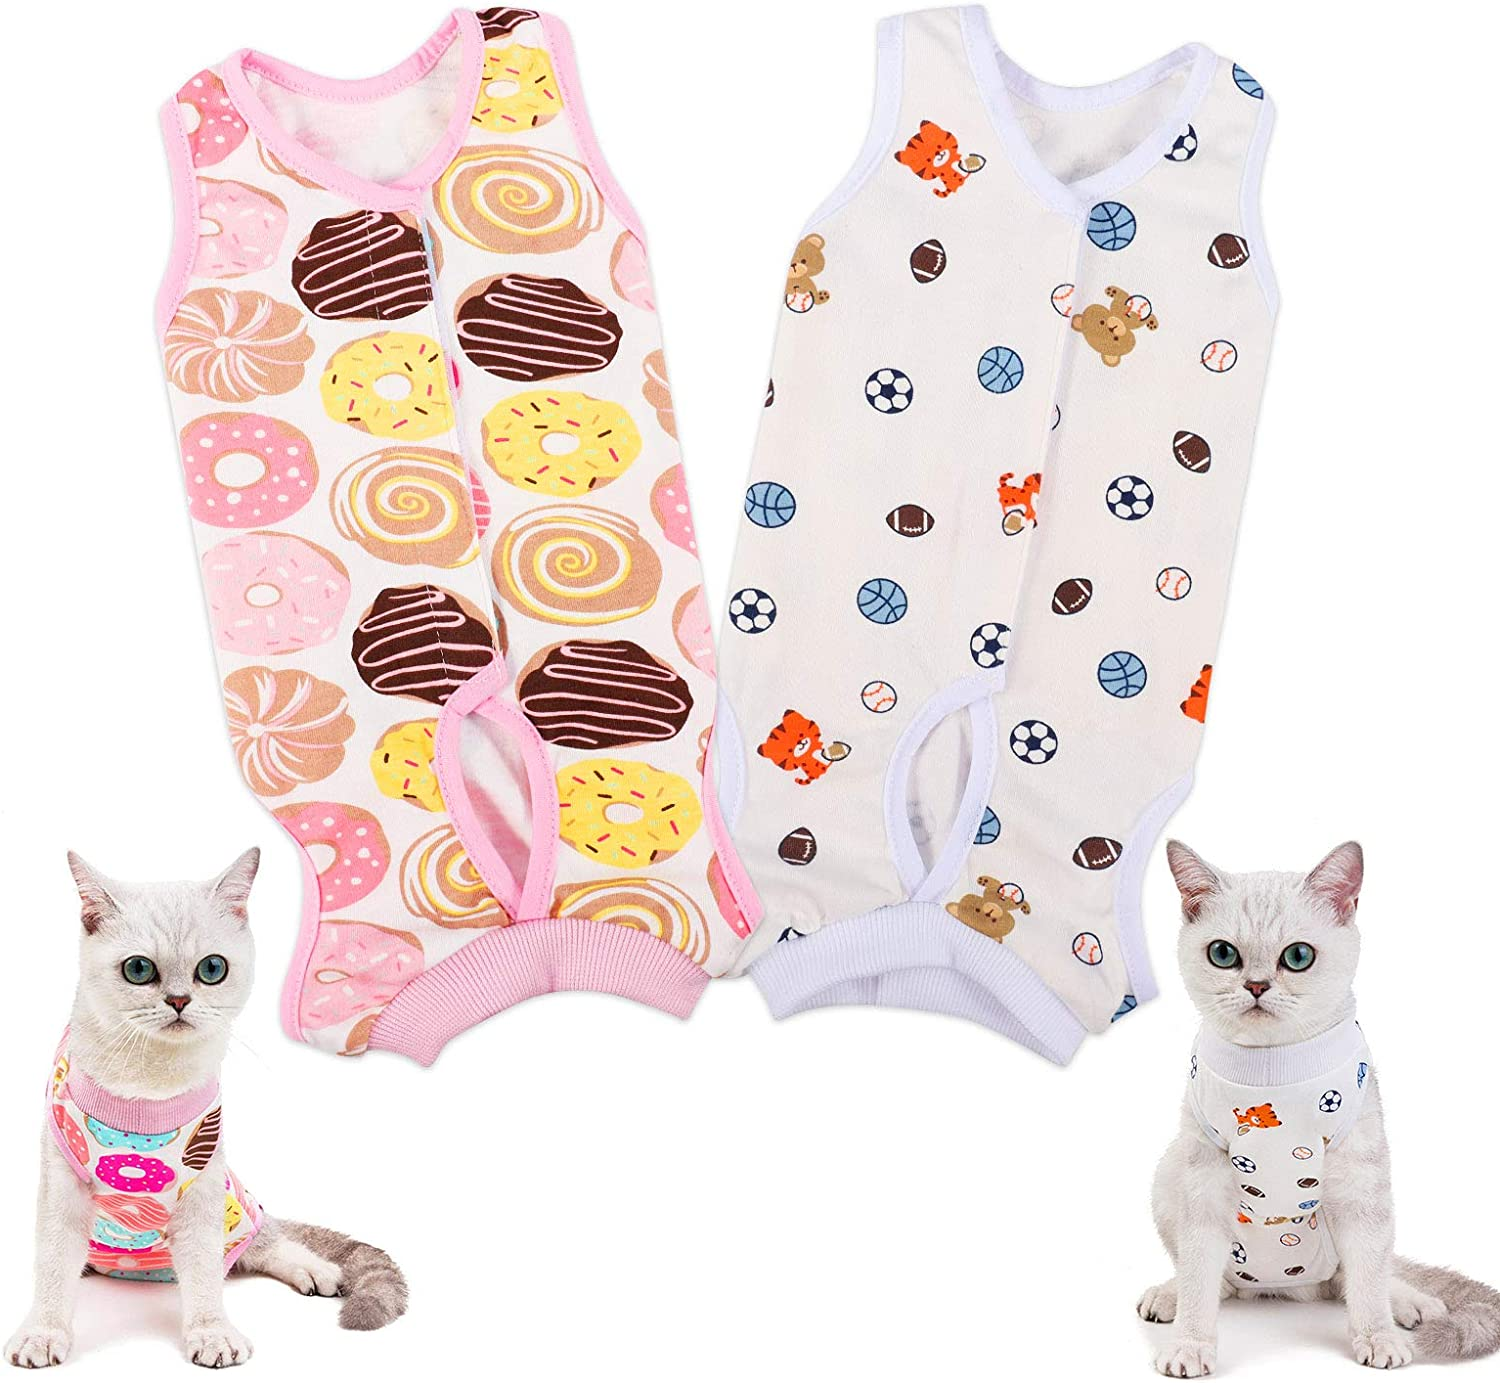 tiopeia E-Collar Alternative for Cats and Dogs, Pet Wound Surgery Recovery Suit for Abdominal Wounds or Skin Diseases, After Surgery Wear & Pajama Suit (M, Donuts+Soccer)